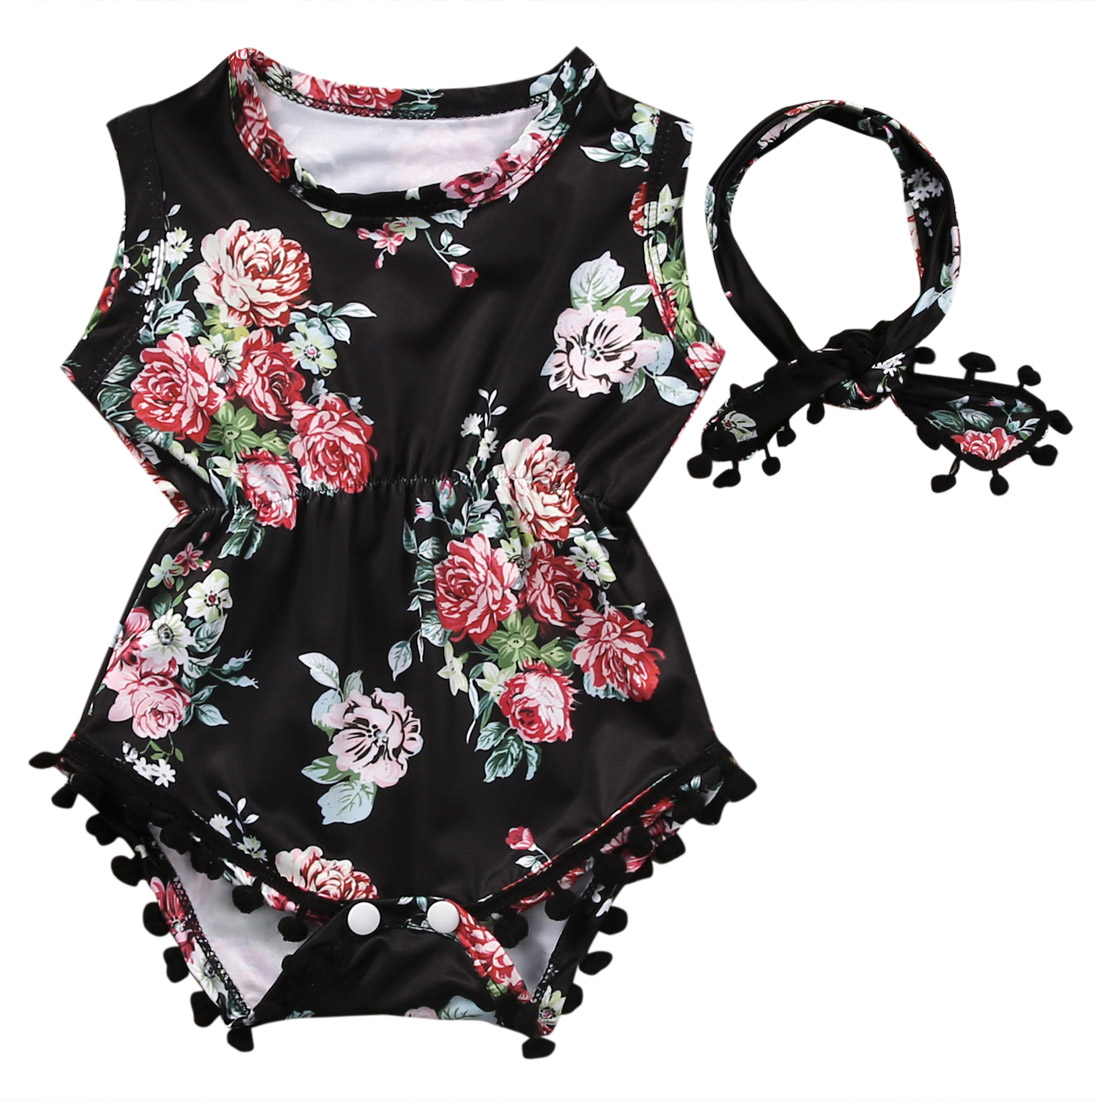 2018 New Summer 0-24m Newborn Baby Girl Sleeveless Floral Print Lace Halter Bodysuit Jumpsuit Headhand 2pcs Cute Baby Clothes Girls' Baby Clothing